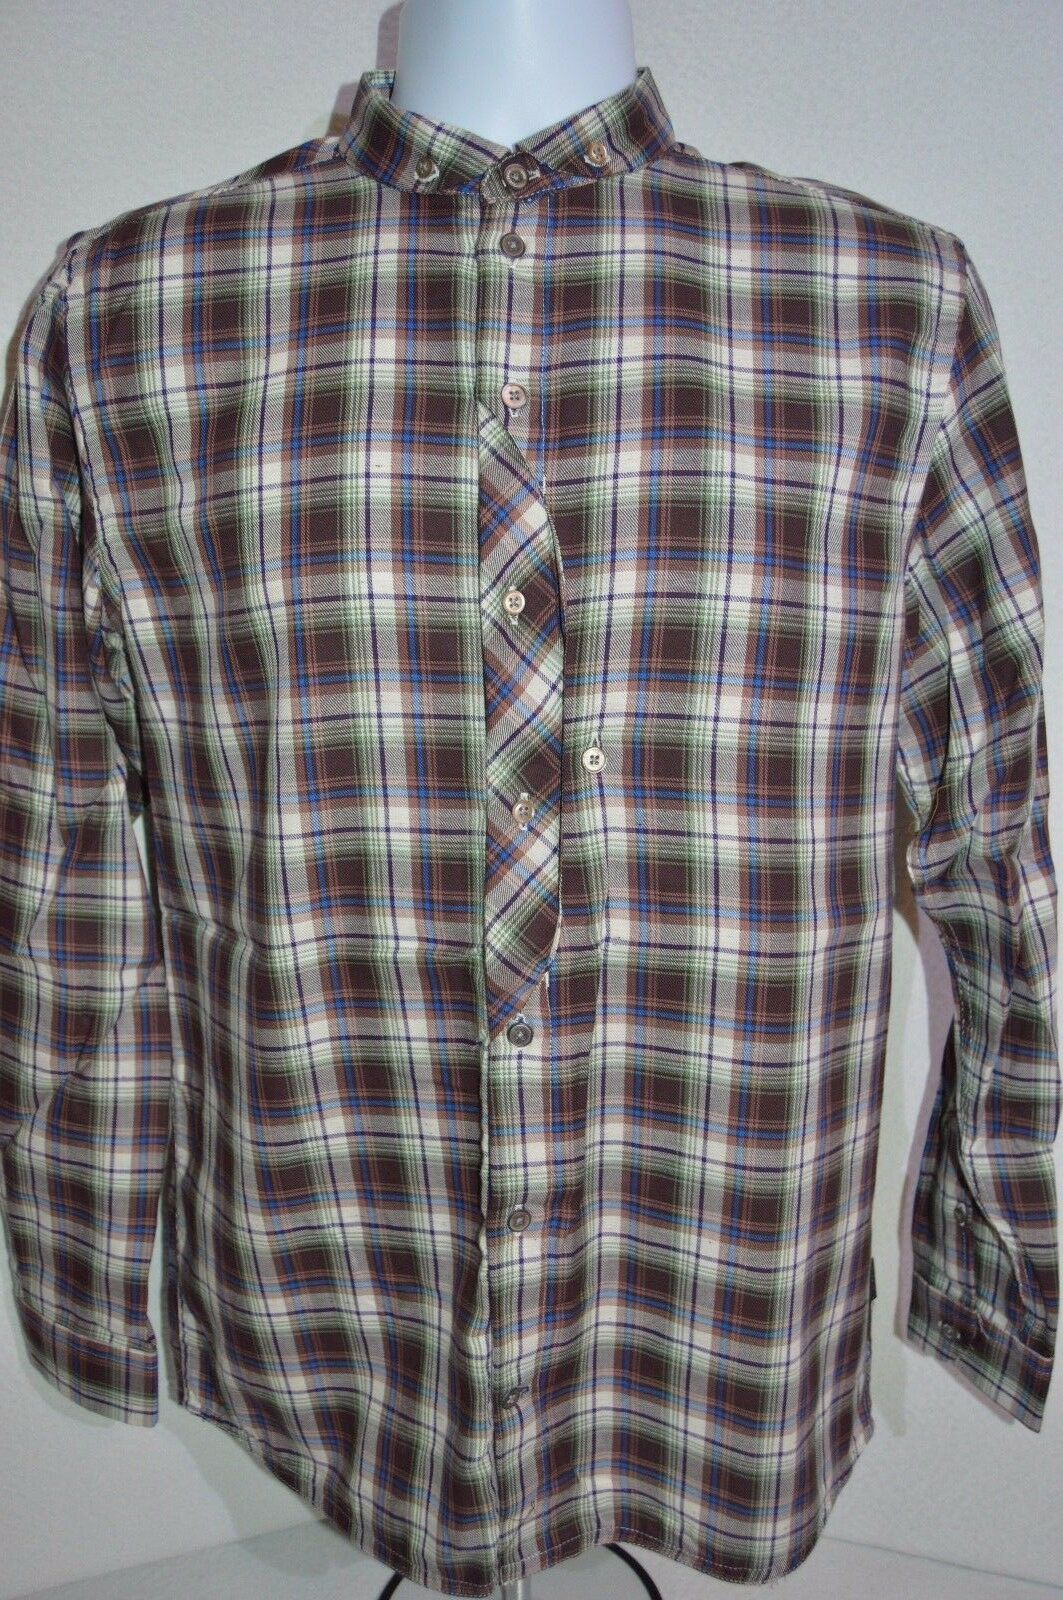 PAUL SMITH JEANS Classic Fit Man's Casual Shirt NEW Size Large Retail